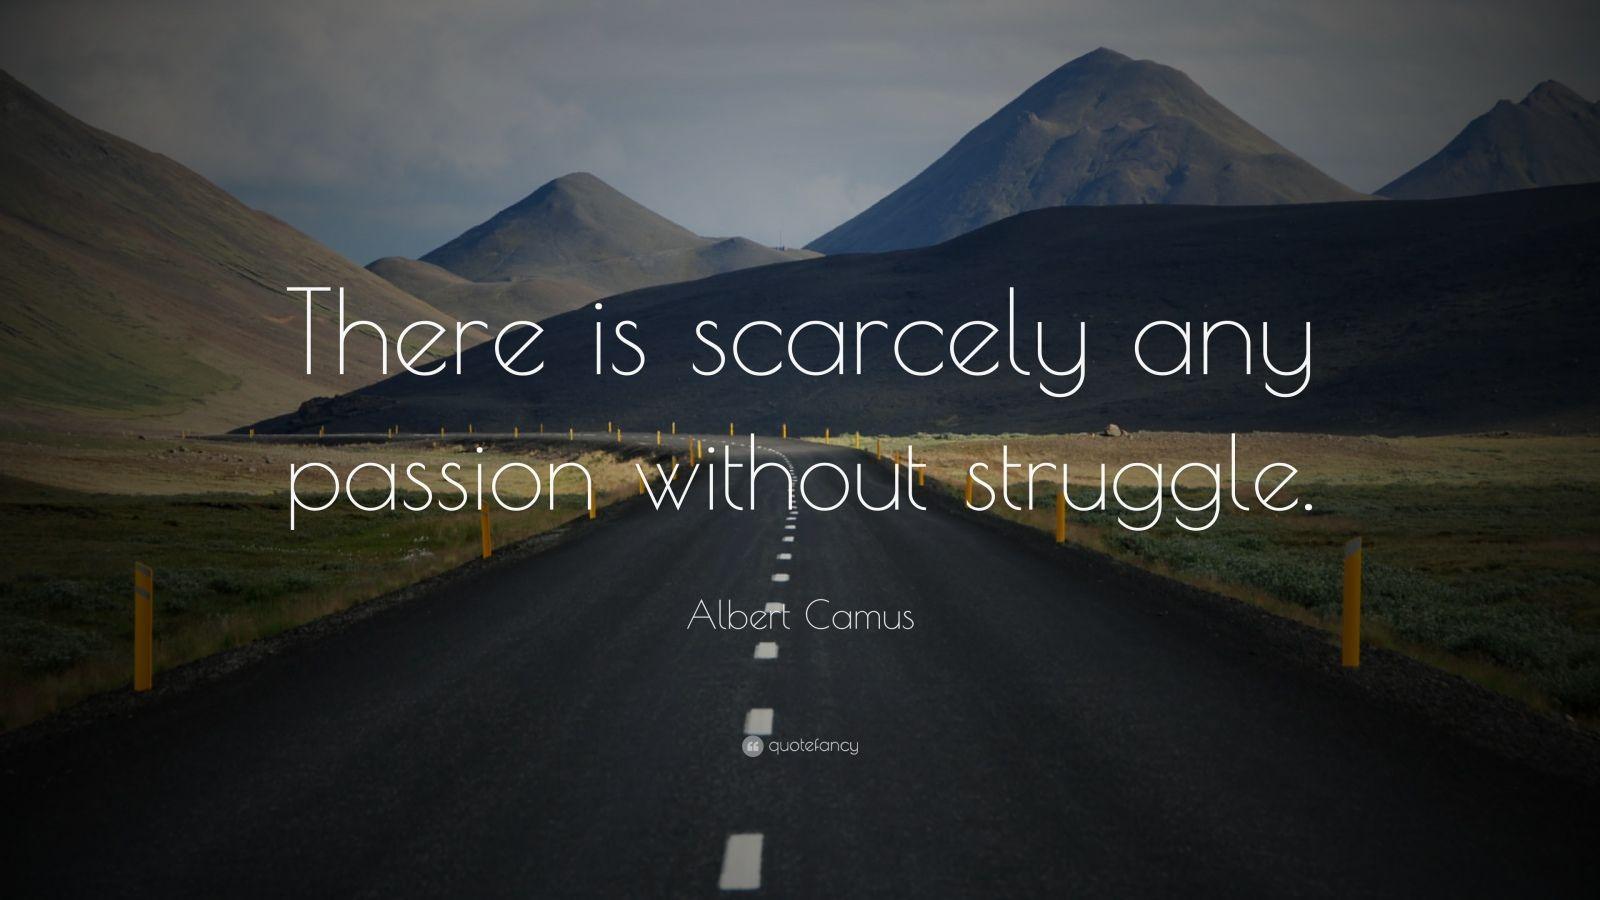 Motivational Quotes Images Hd Wallpapers Albert Camus Quotes 100 Wallpapers Quotefancy